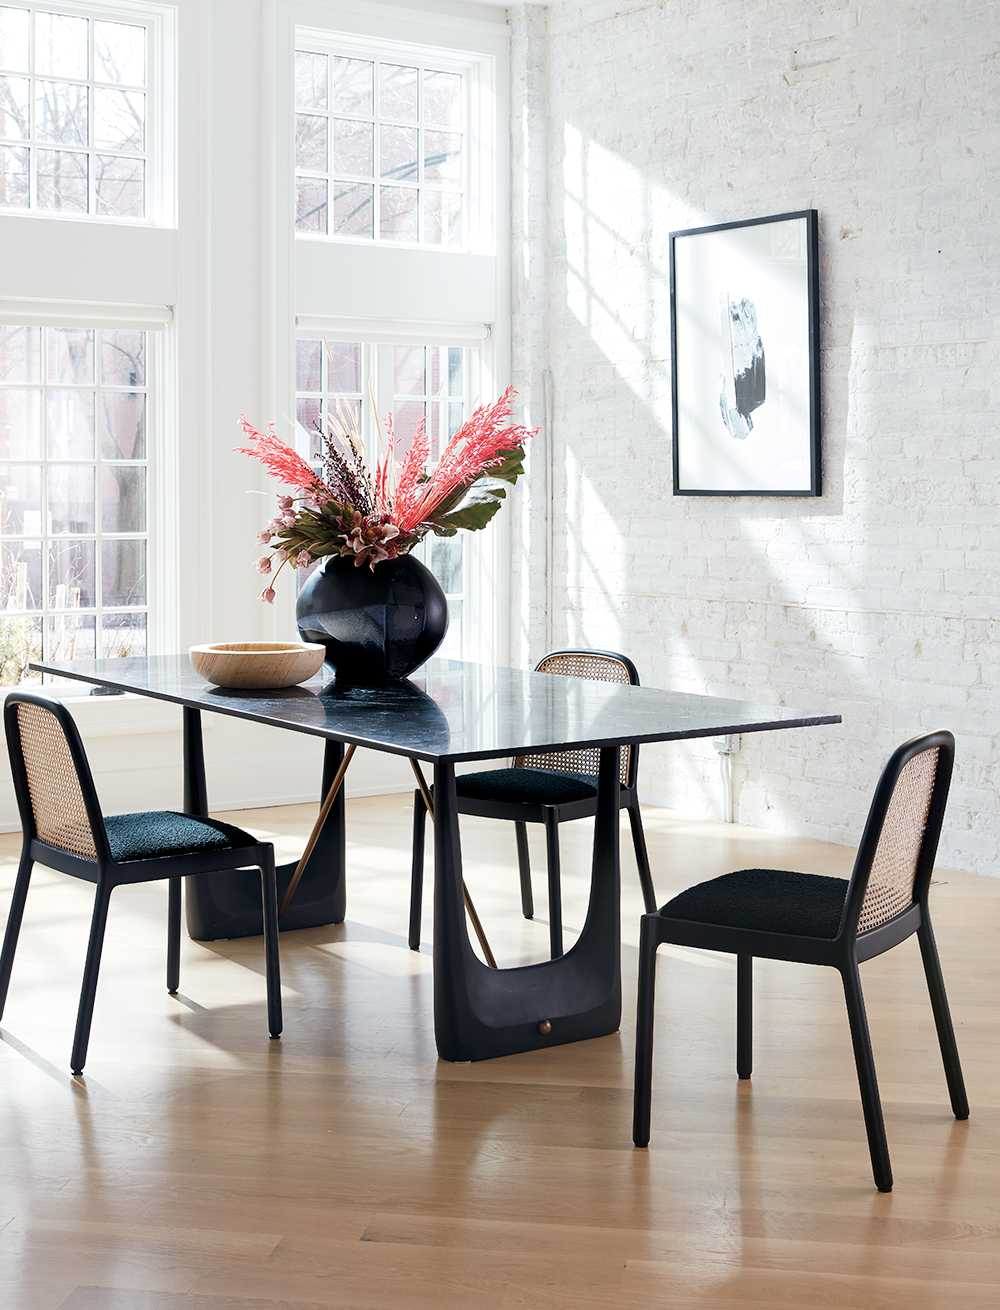 Modern Furniture: Affordable, Unique, Edgy